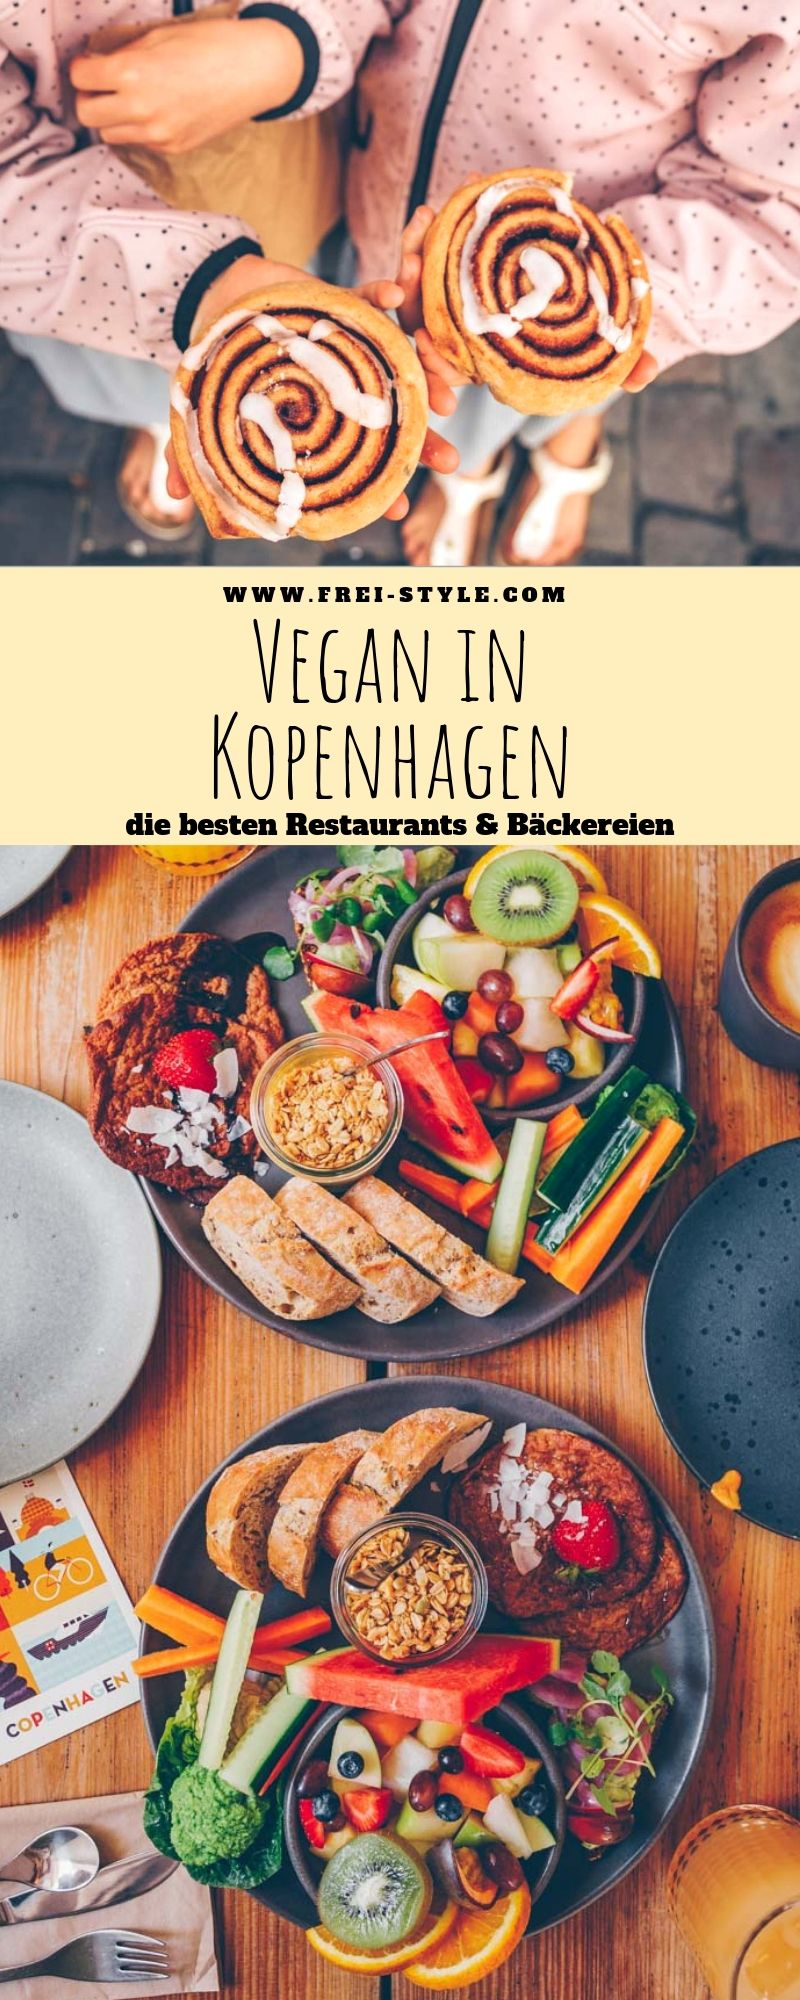 Vegan in Kopenhagen